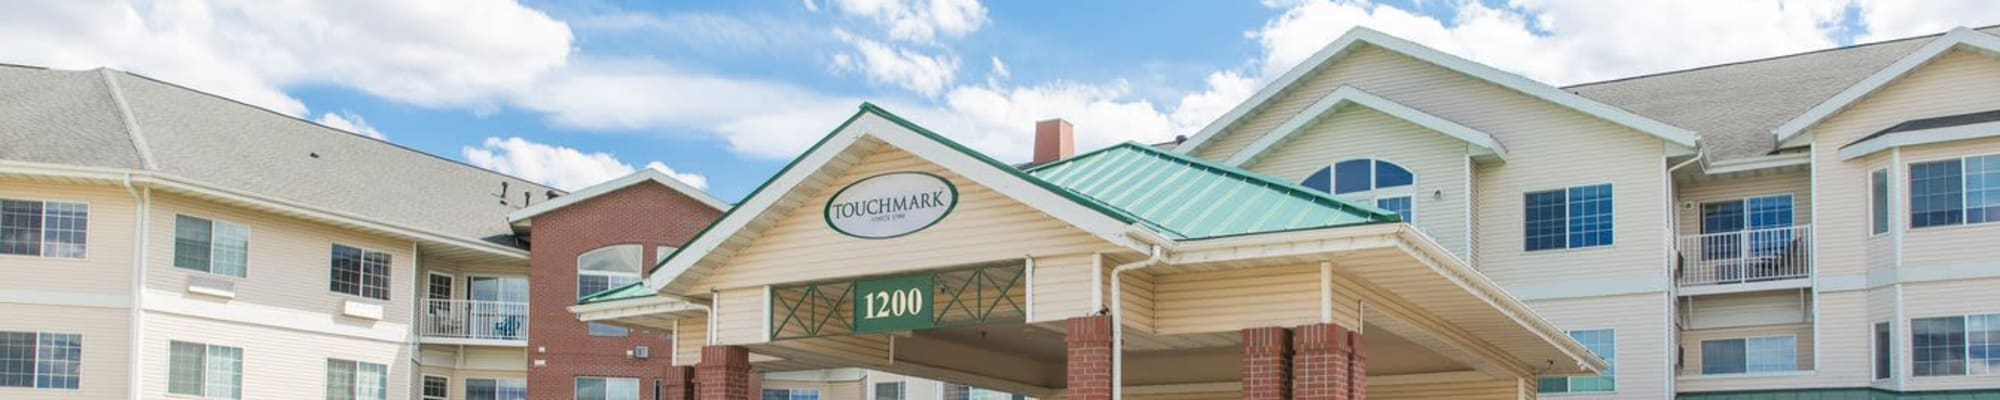 The assisted living calendar from Touchmark at Harwood Groves in Fargo, North Dakota